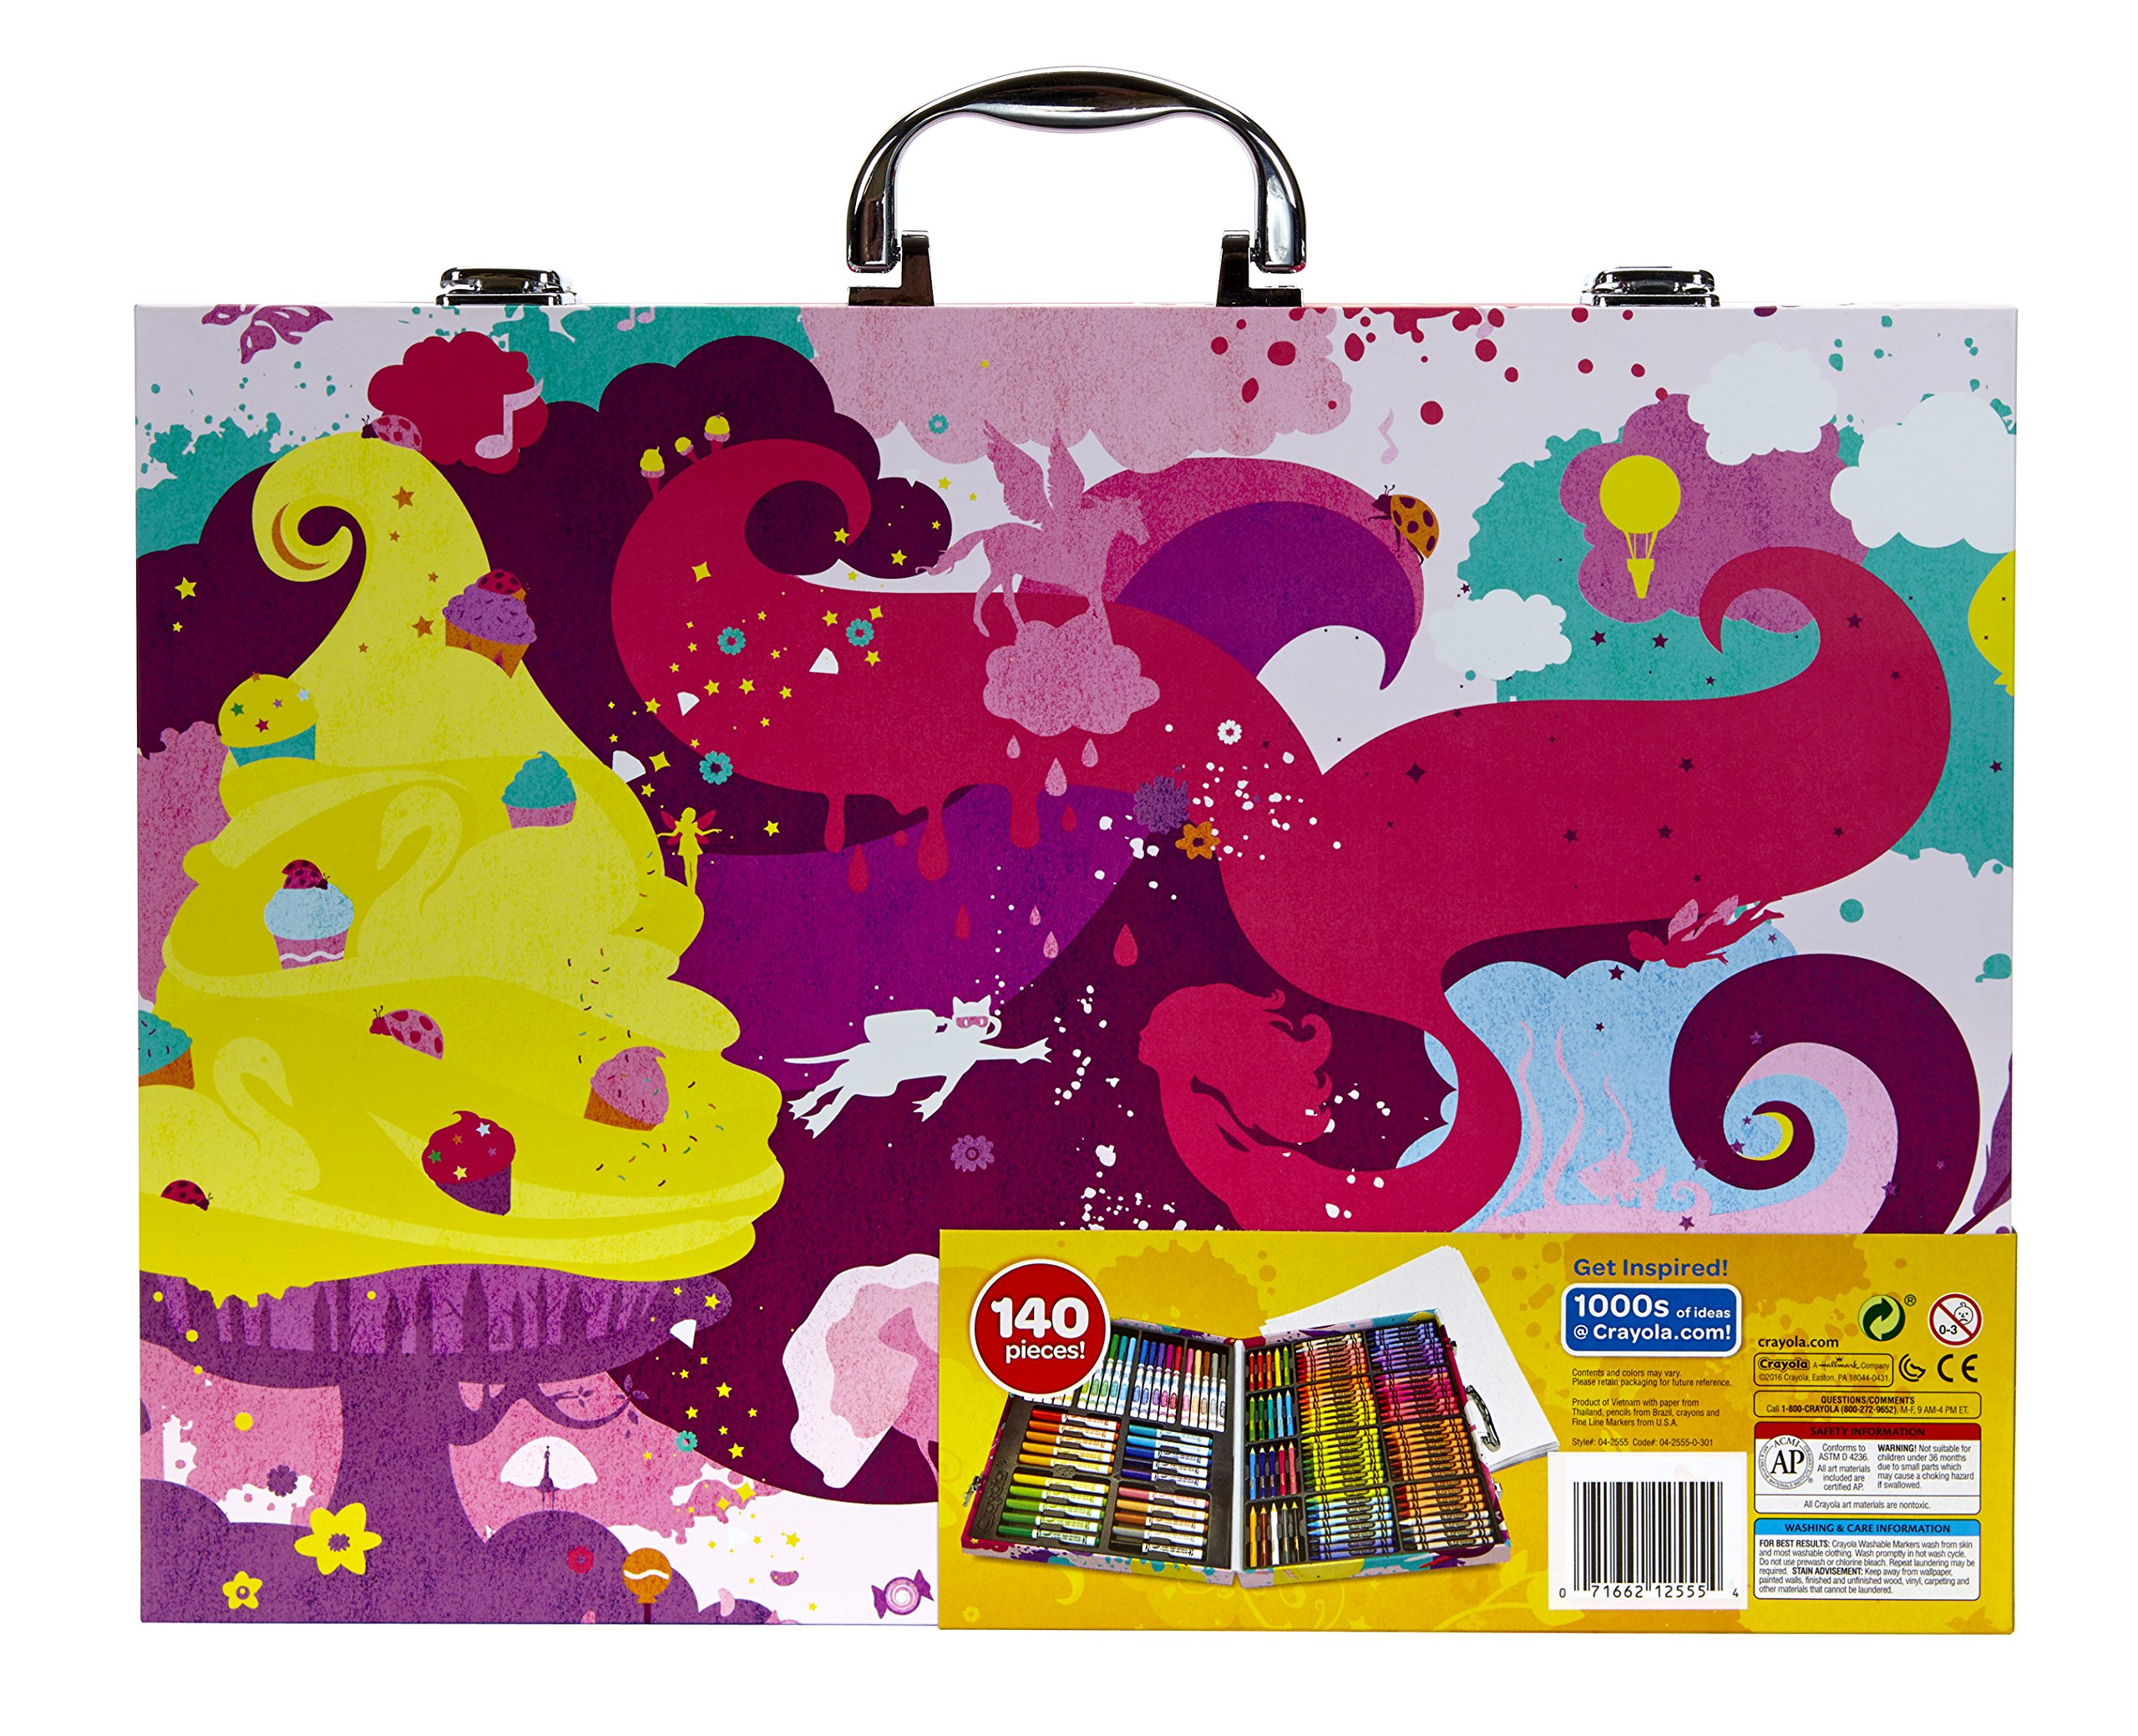 Crayola Inspiration Art Case in Pink, 140 Art & Coloring Supplies, Gift for Girls by Crayola (Image #8)